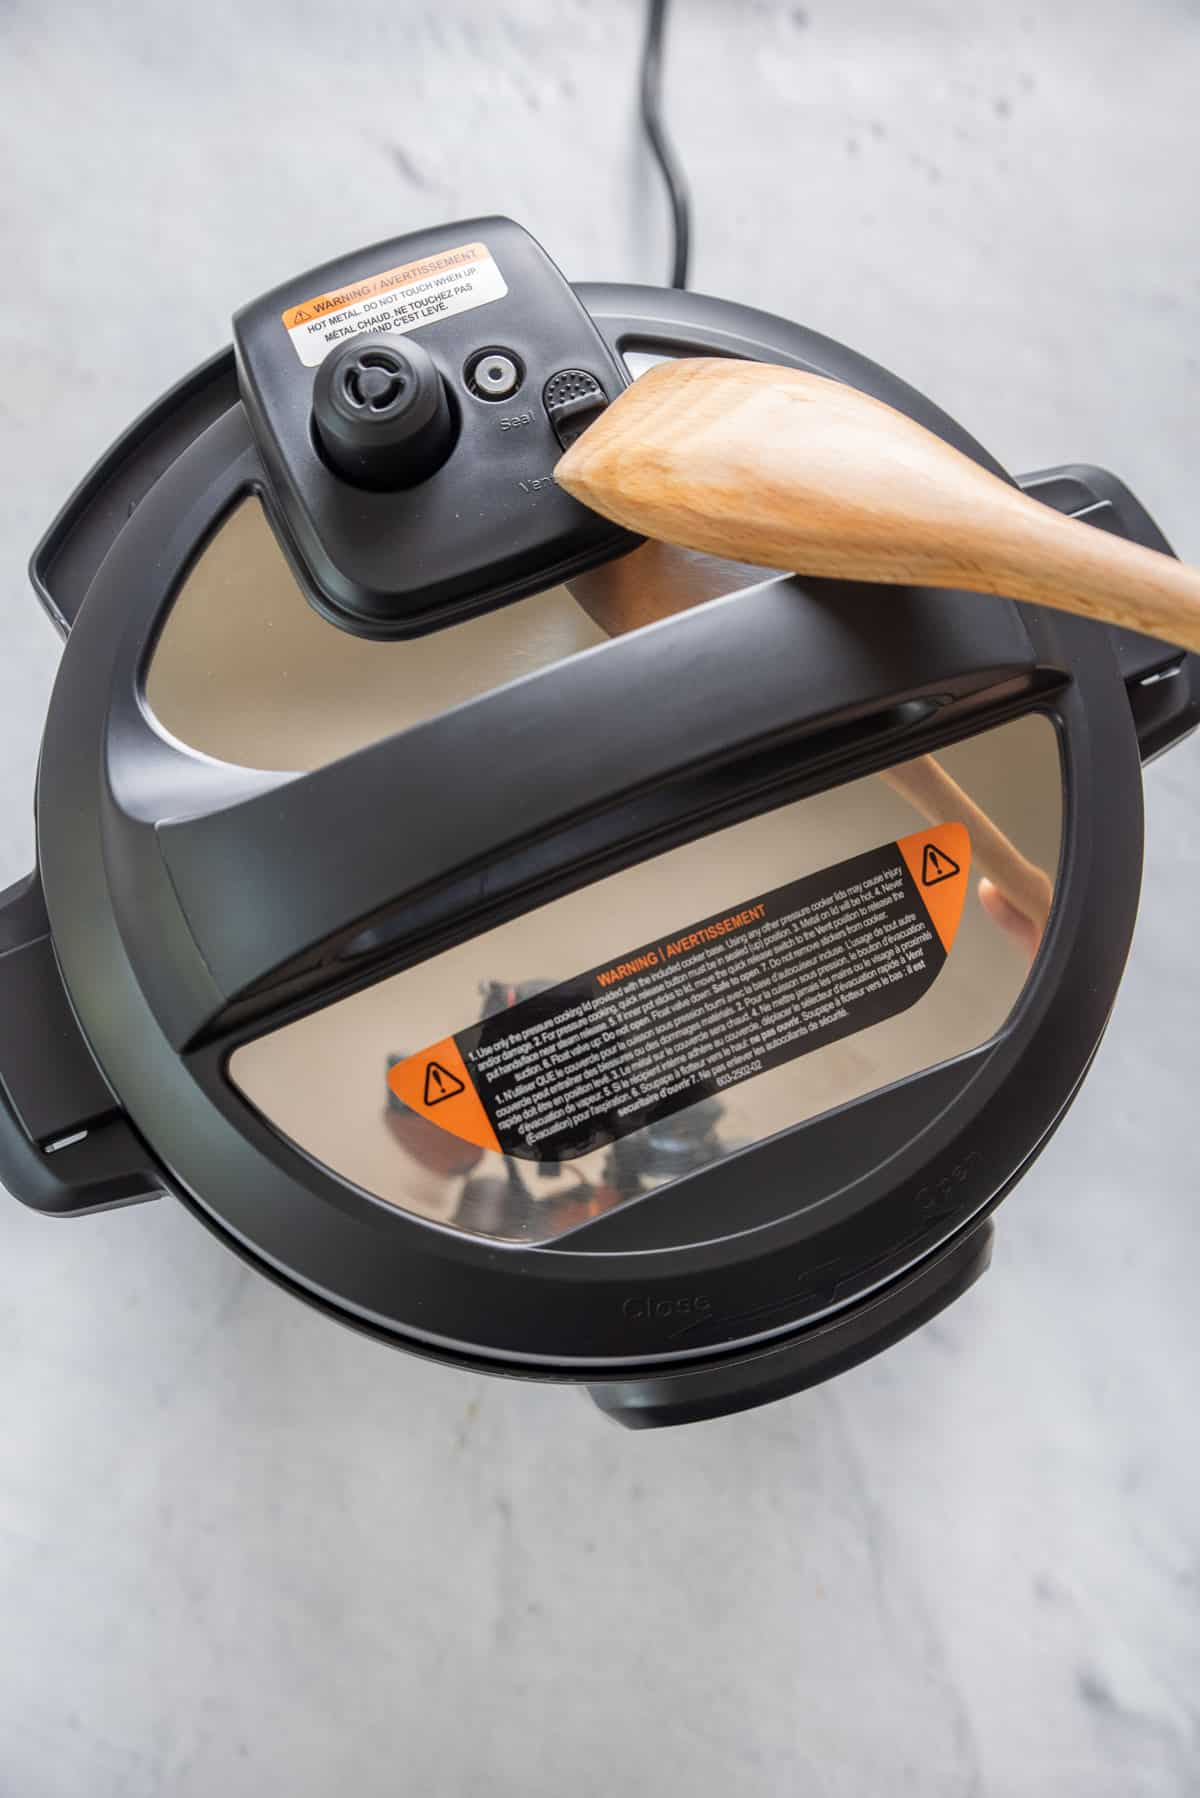 Wooden spoon being used to seal and vent the instant pot